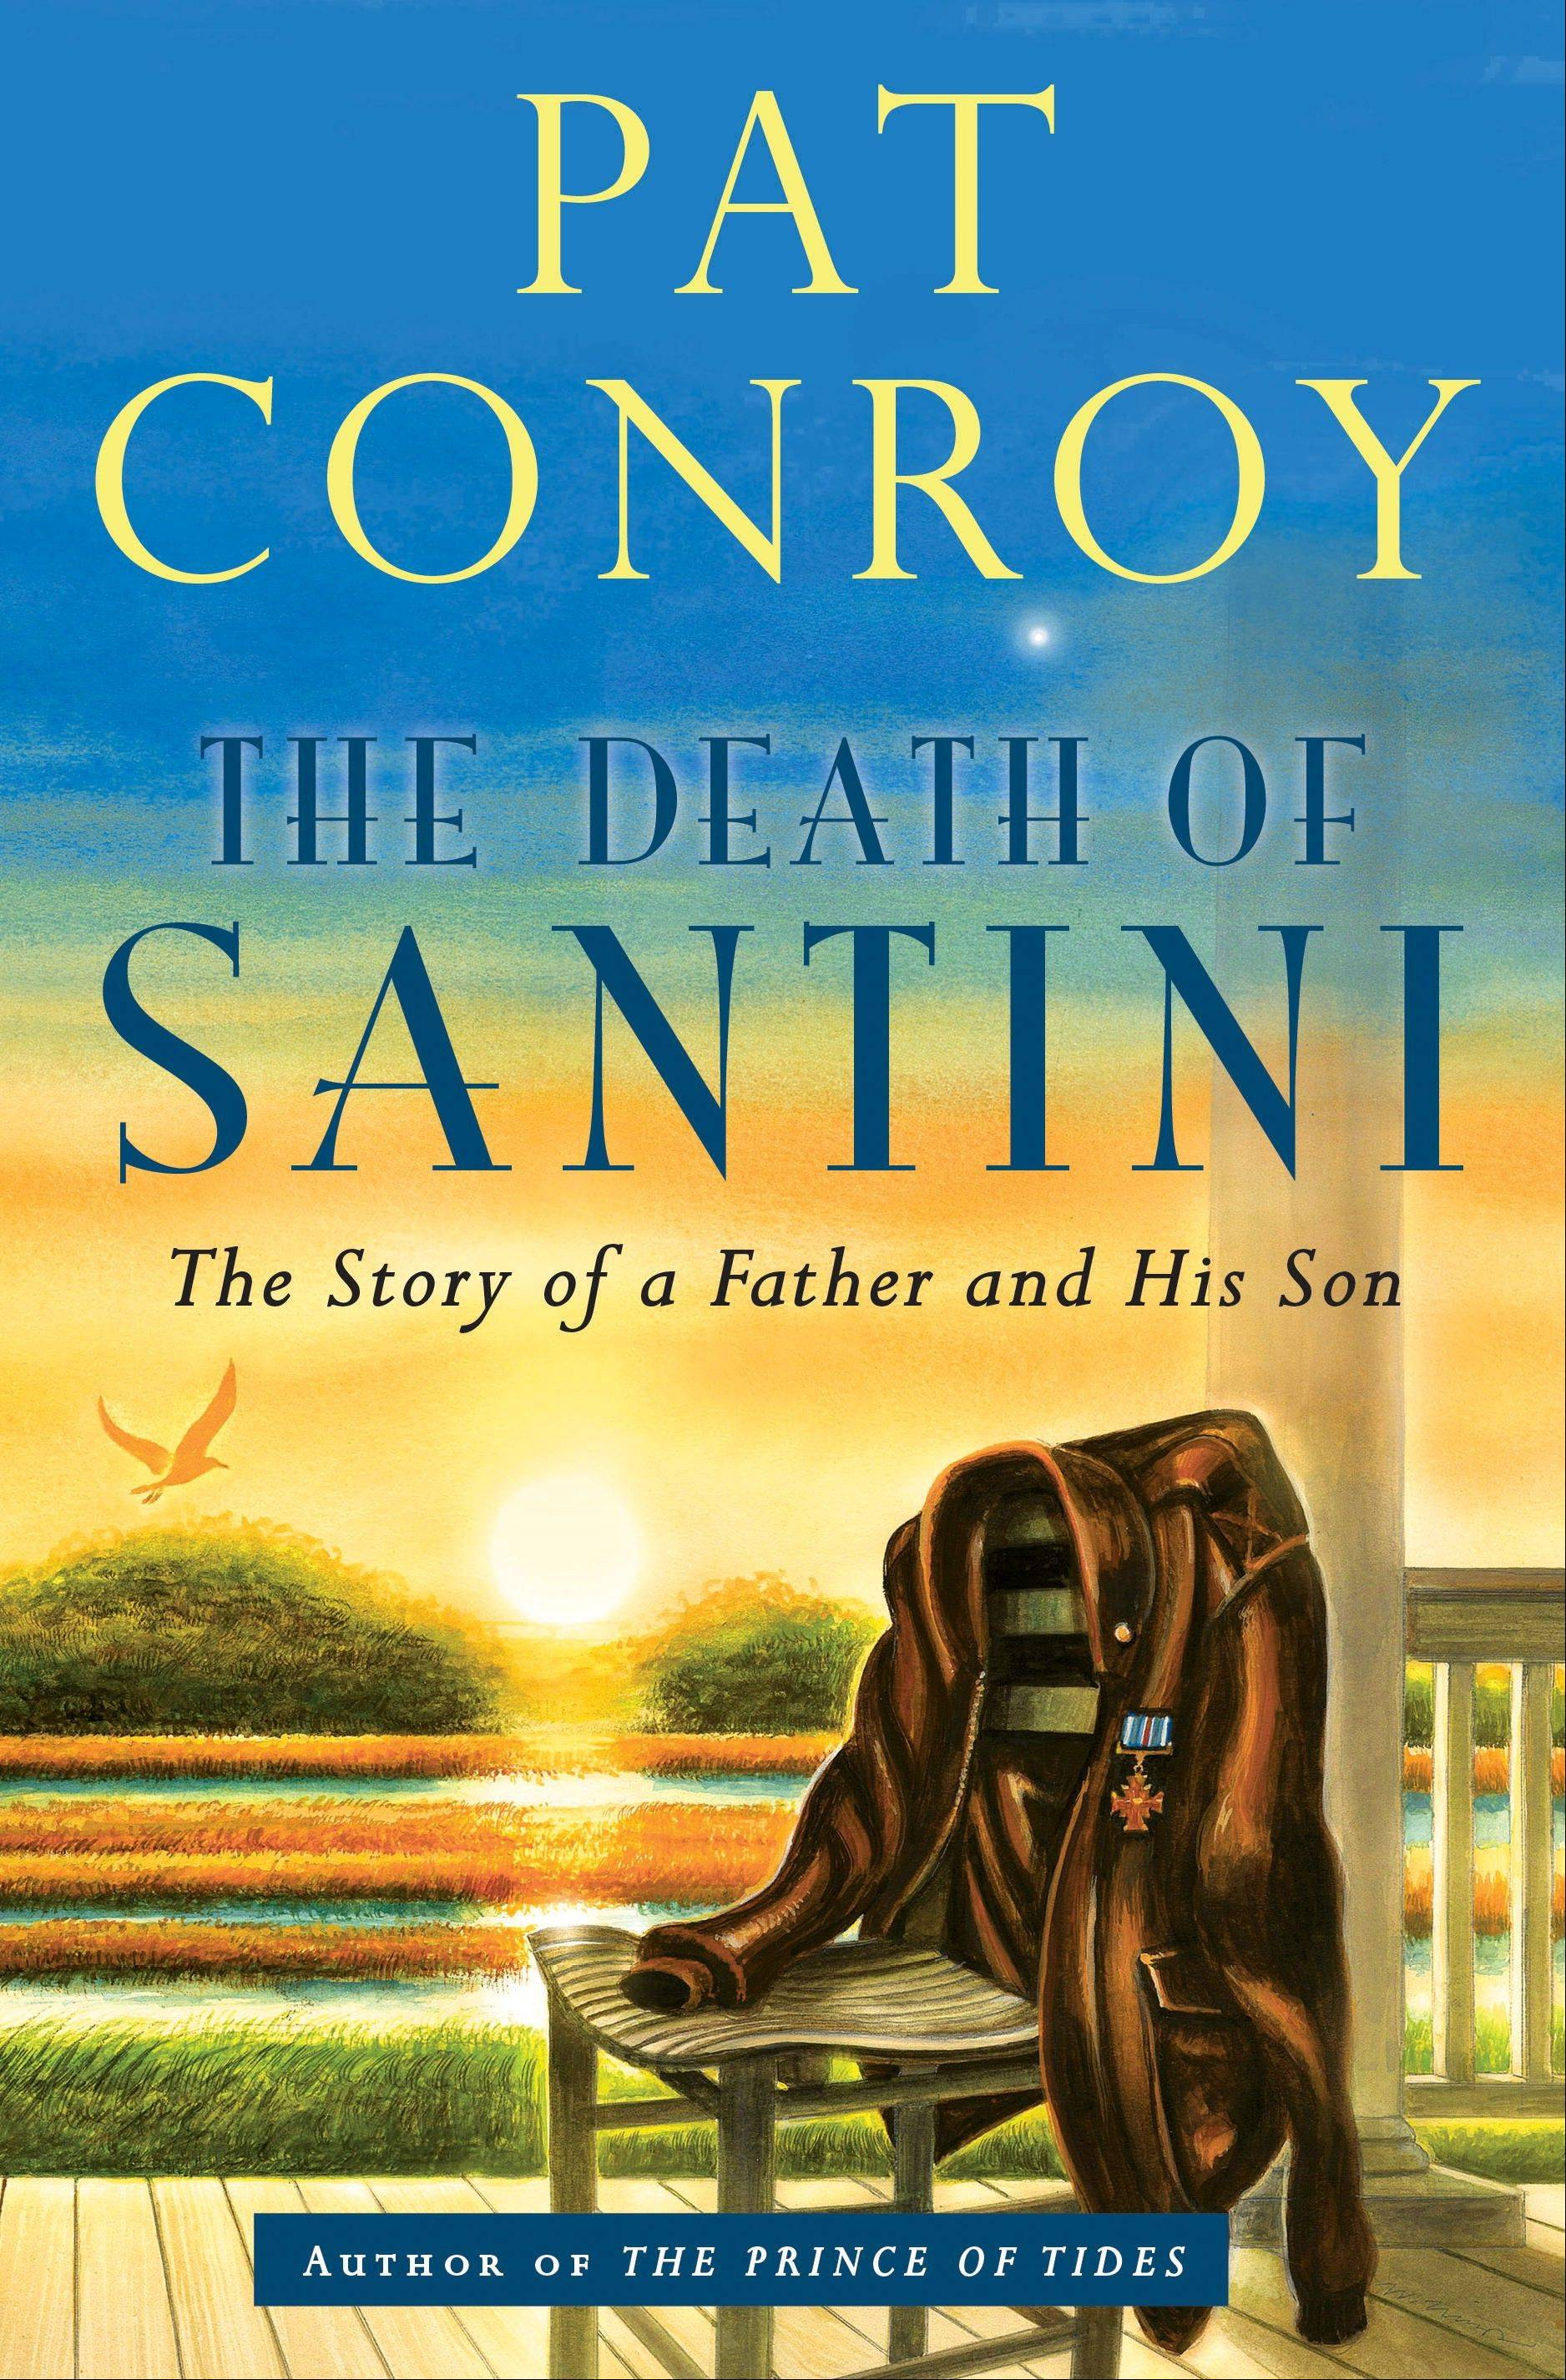 """The Death of Santini: The Story of a Father and His Son"" is the latest work from Pat Conroy"